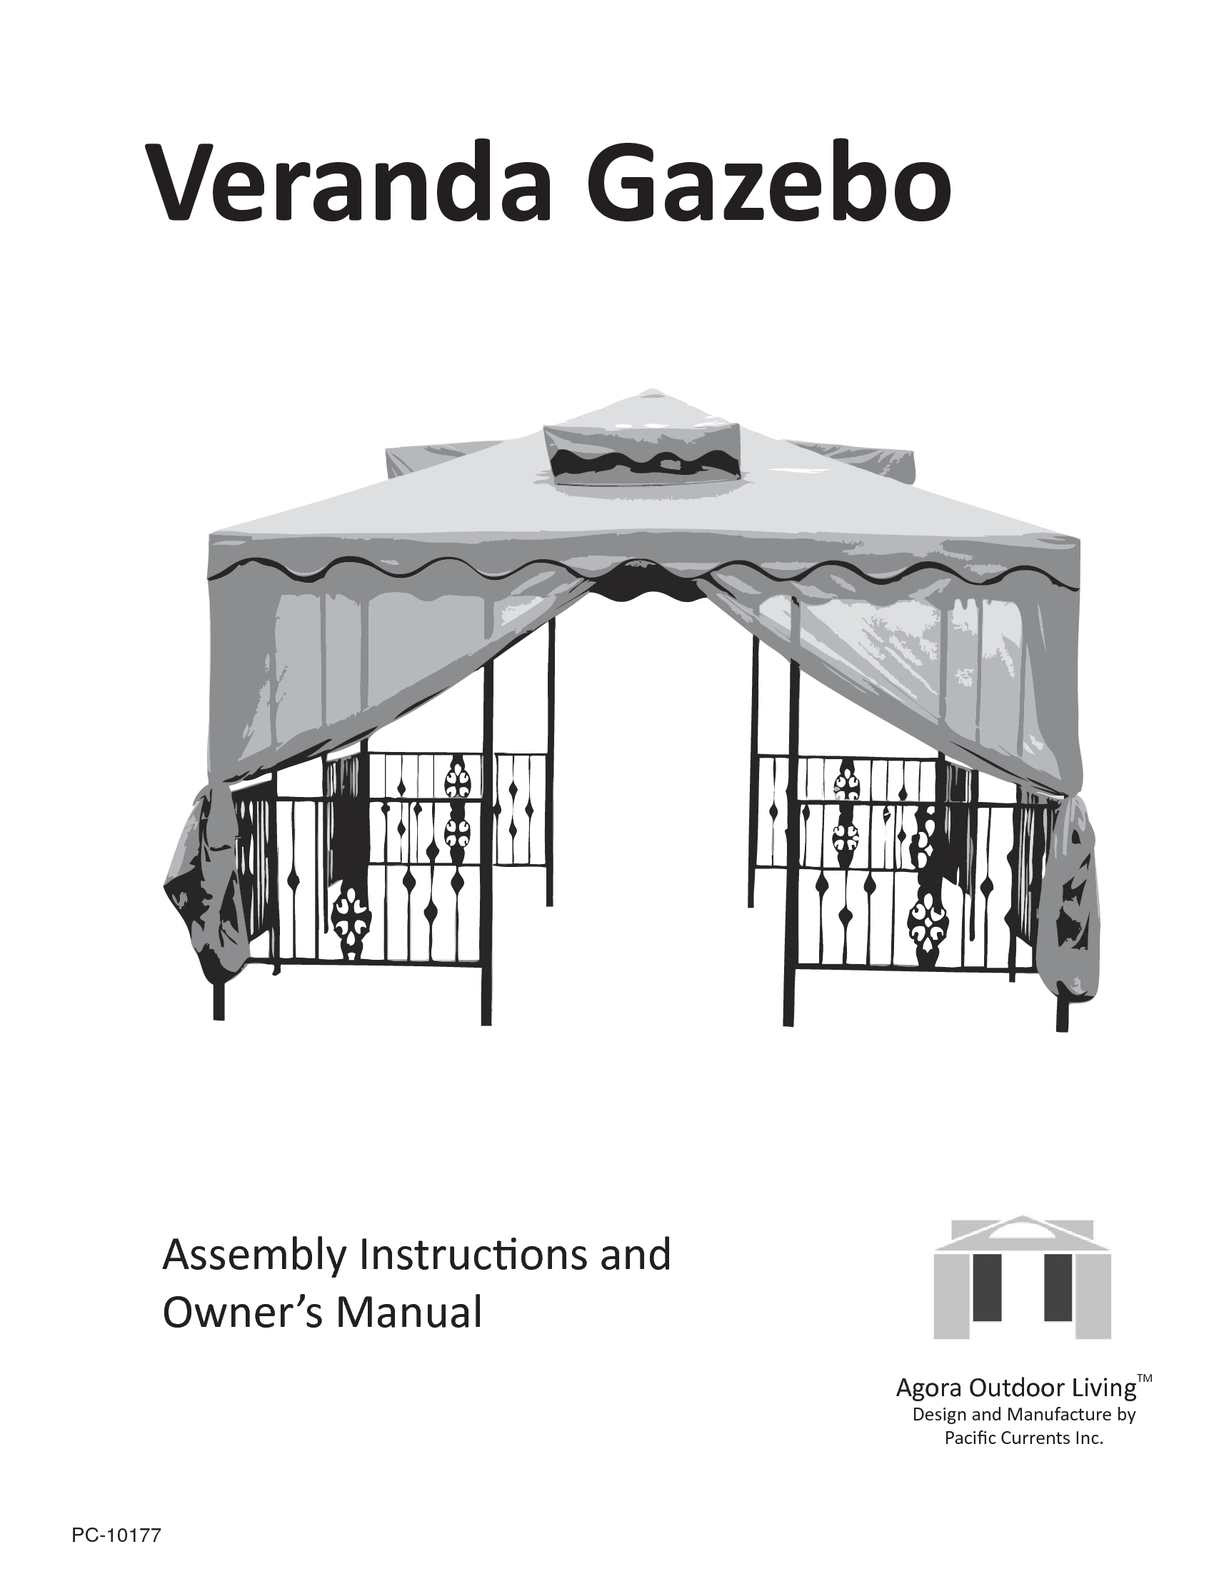 Calaméo Veranda Gazebo Assembly Manual